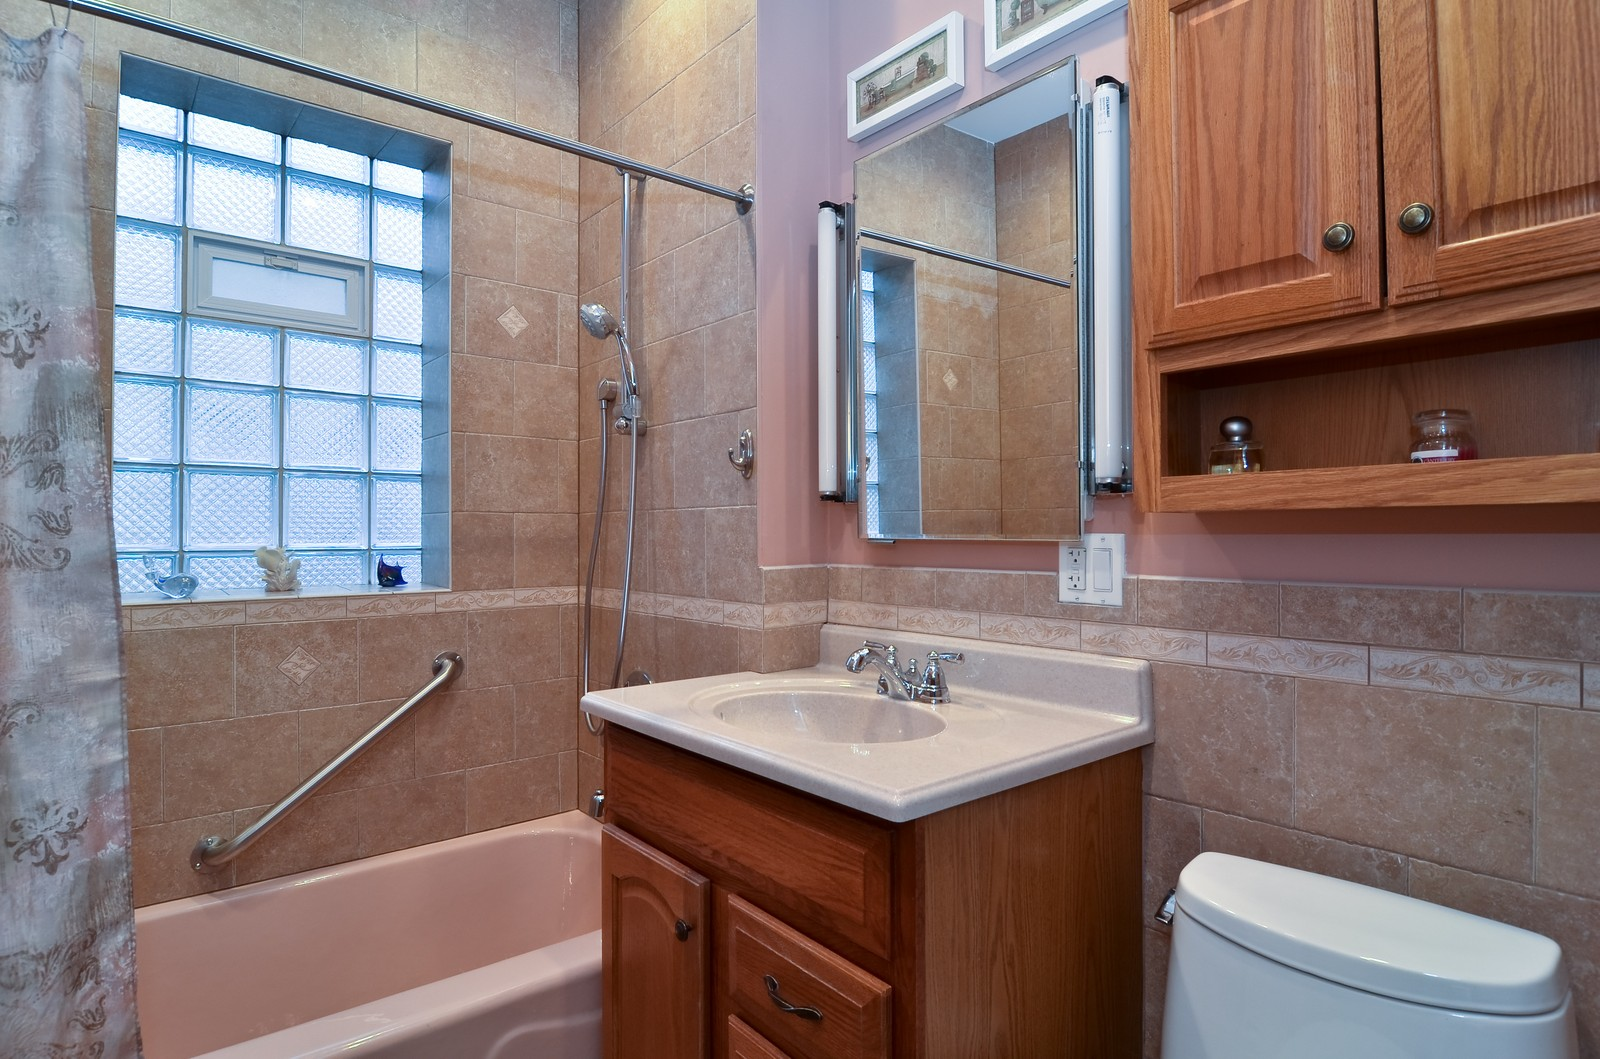 Real Estate Photography - 4808 W Gunnison, Chicago, IL, 60630 - Bathroom